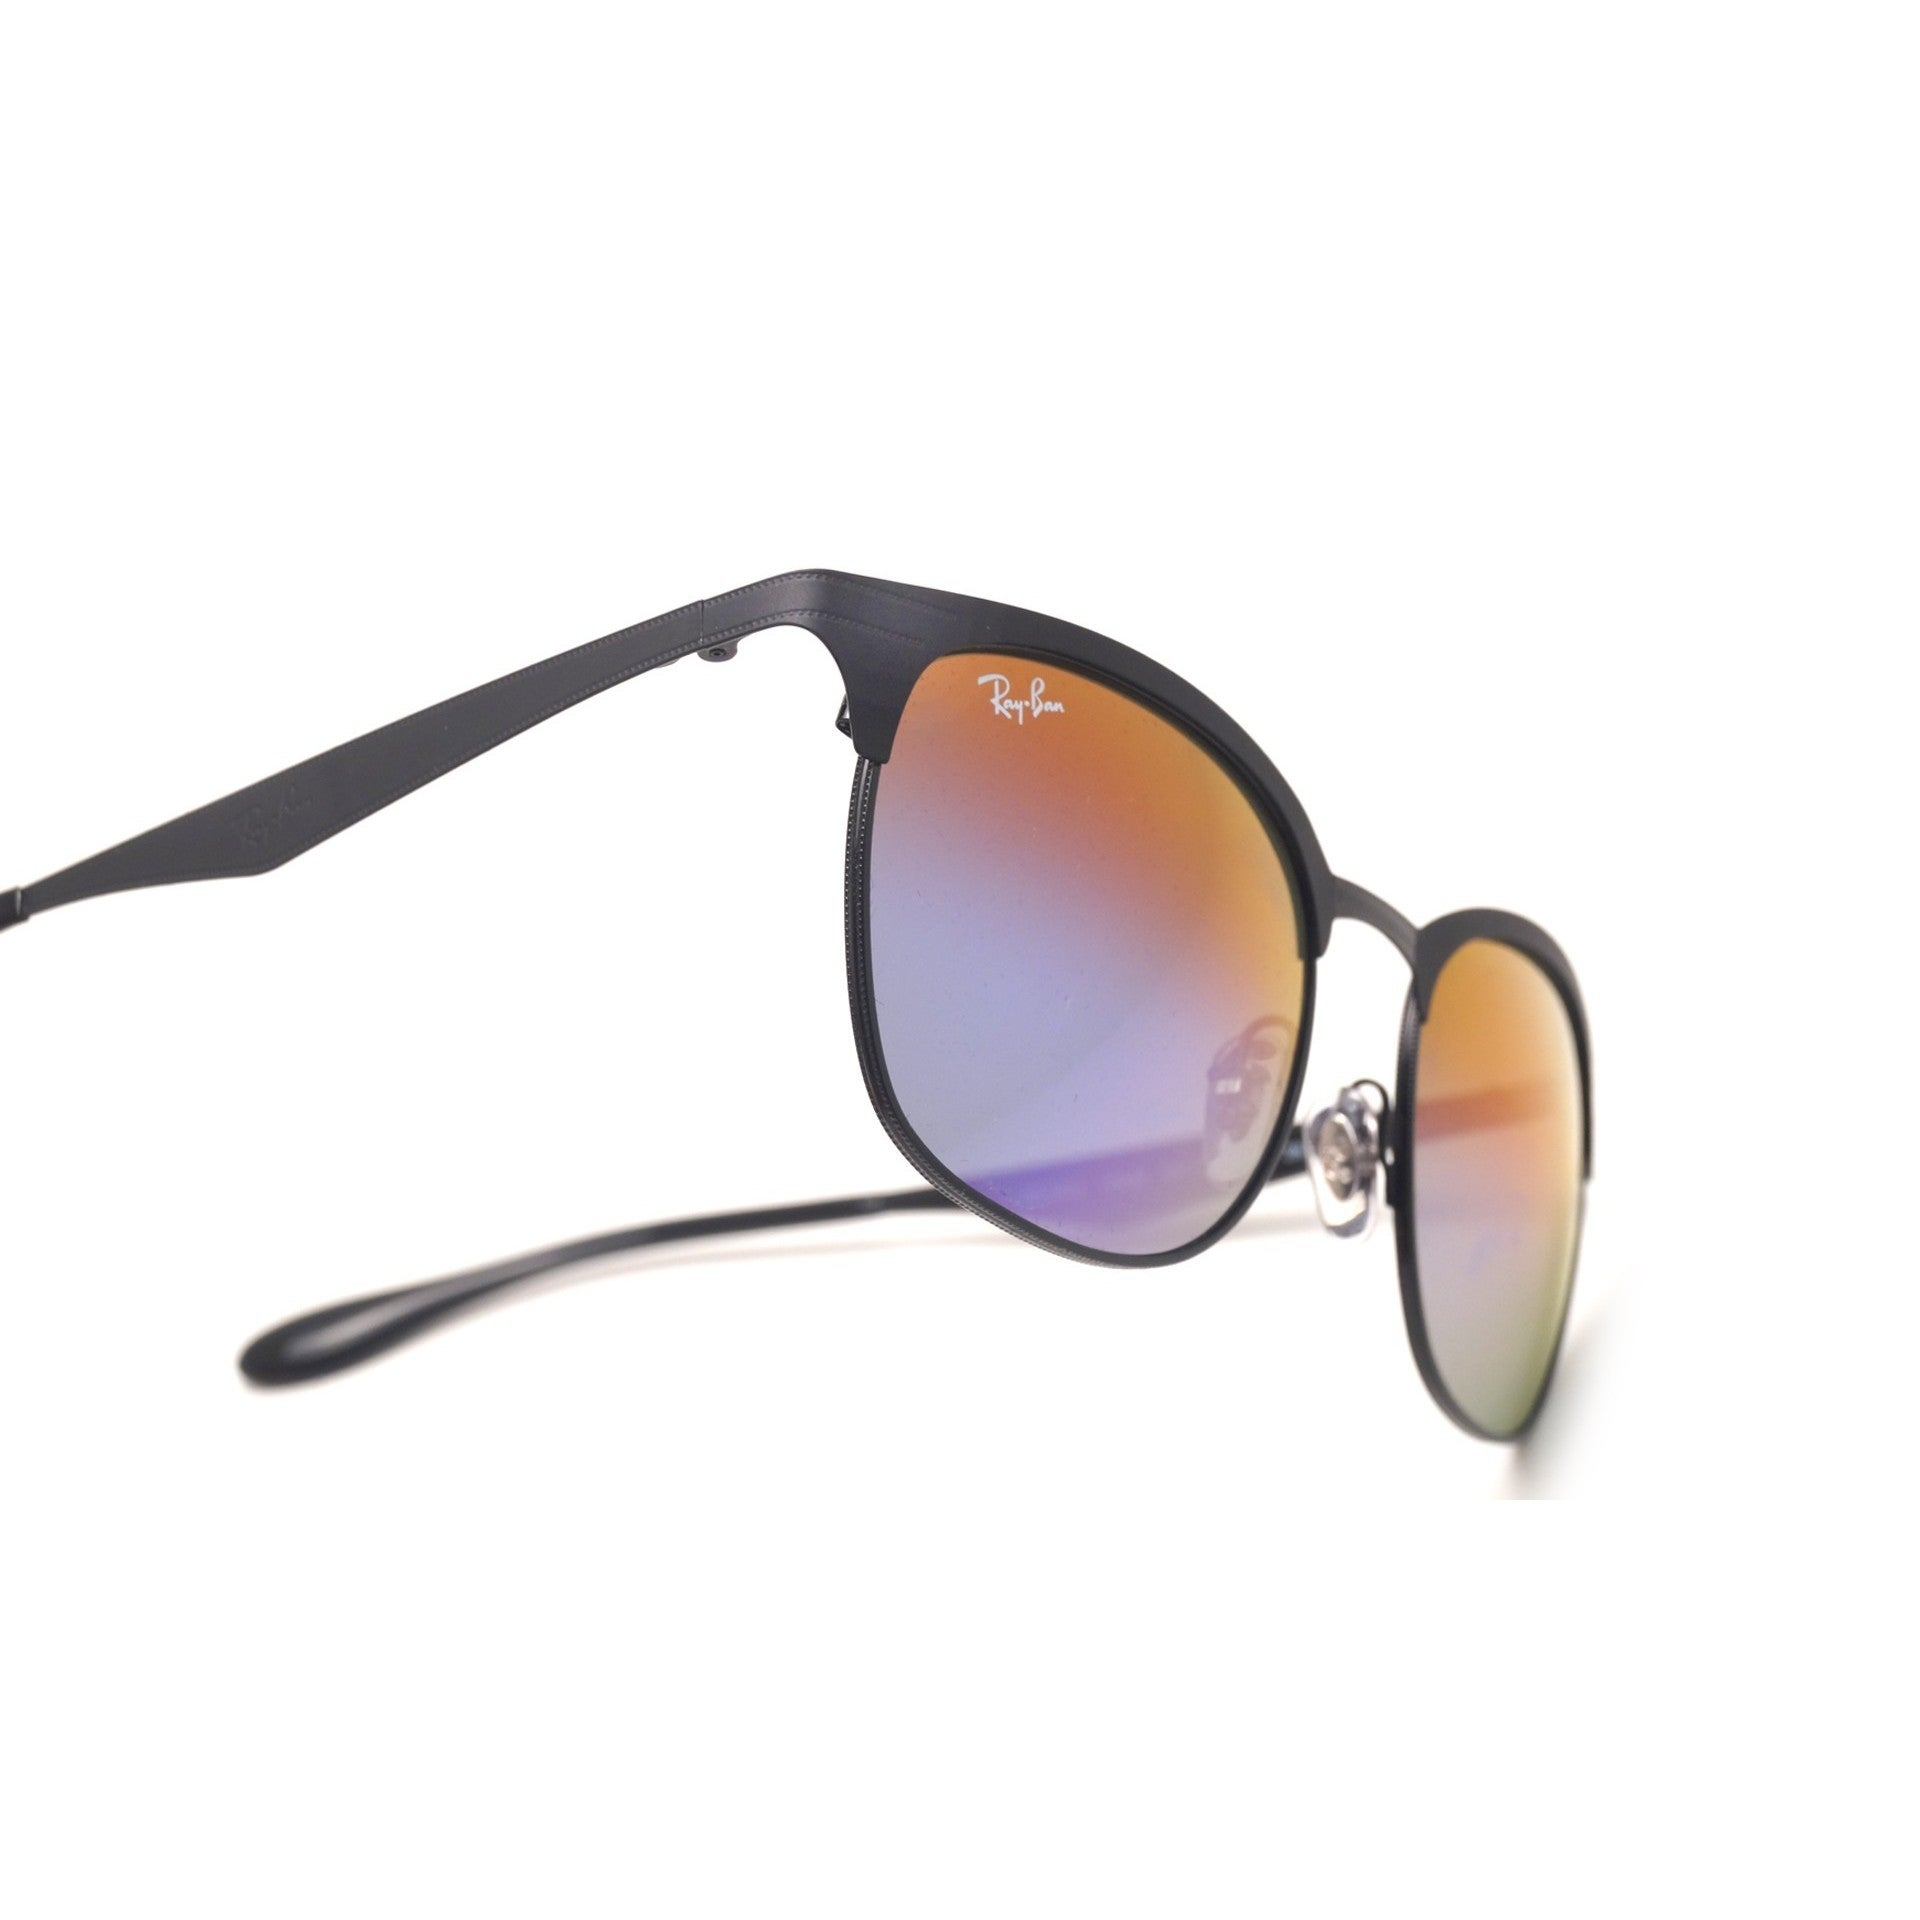 9de23b97bed Shop Ray-Ban Men s RB3538 186 B1 Black Frame Blue Violet Gradient Mirror 53  mm Lens Sunglasses - Free Shipping Today - Overstock - 16741057